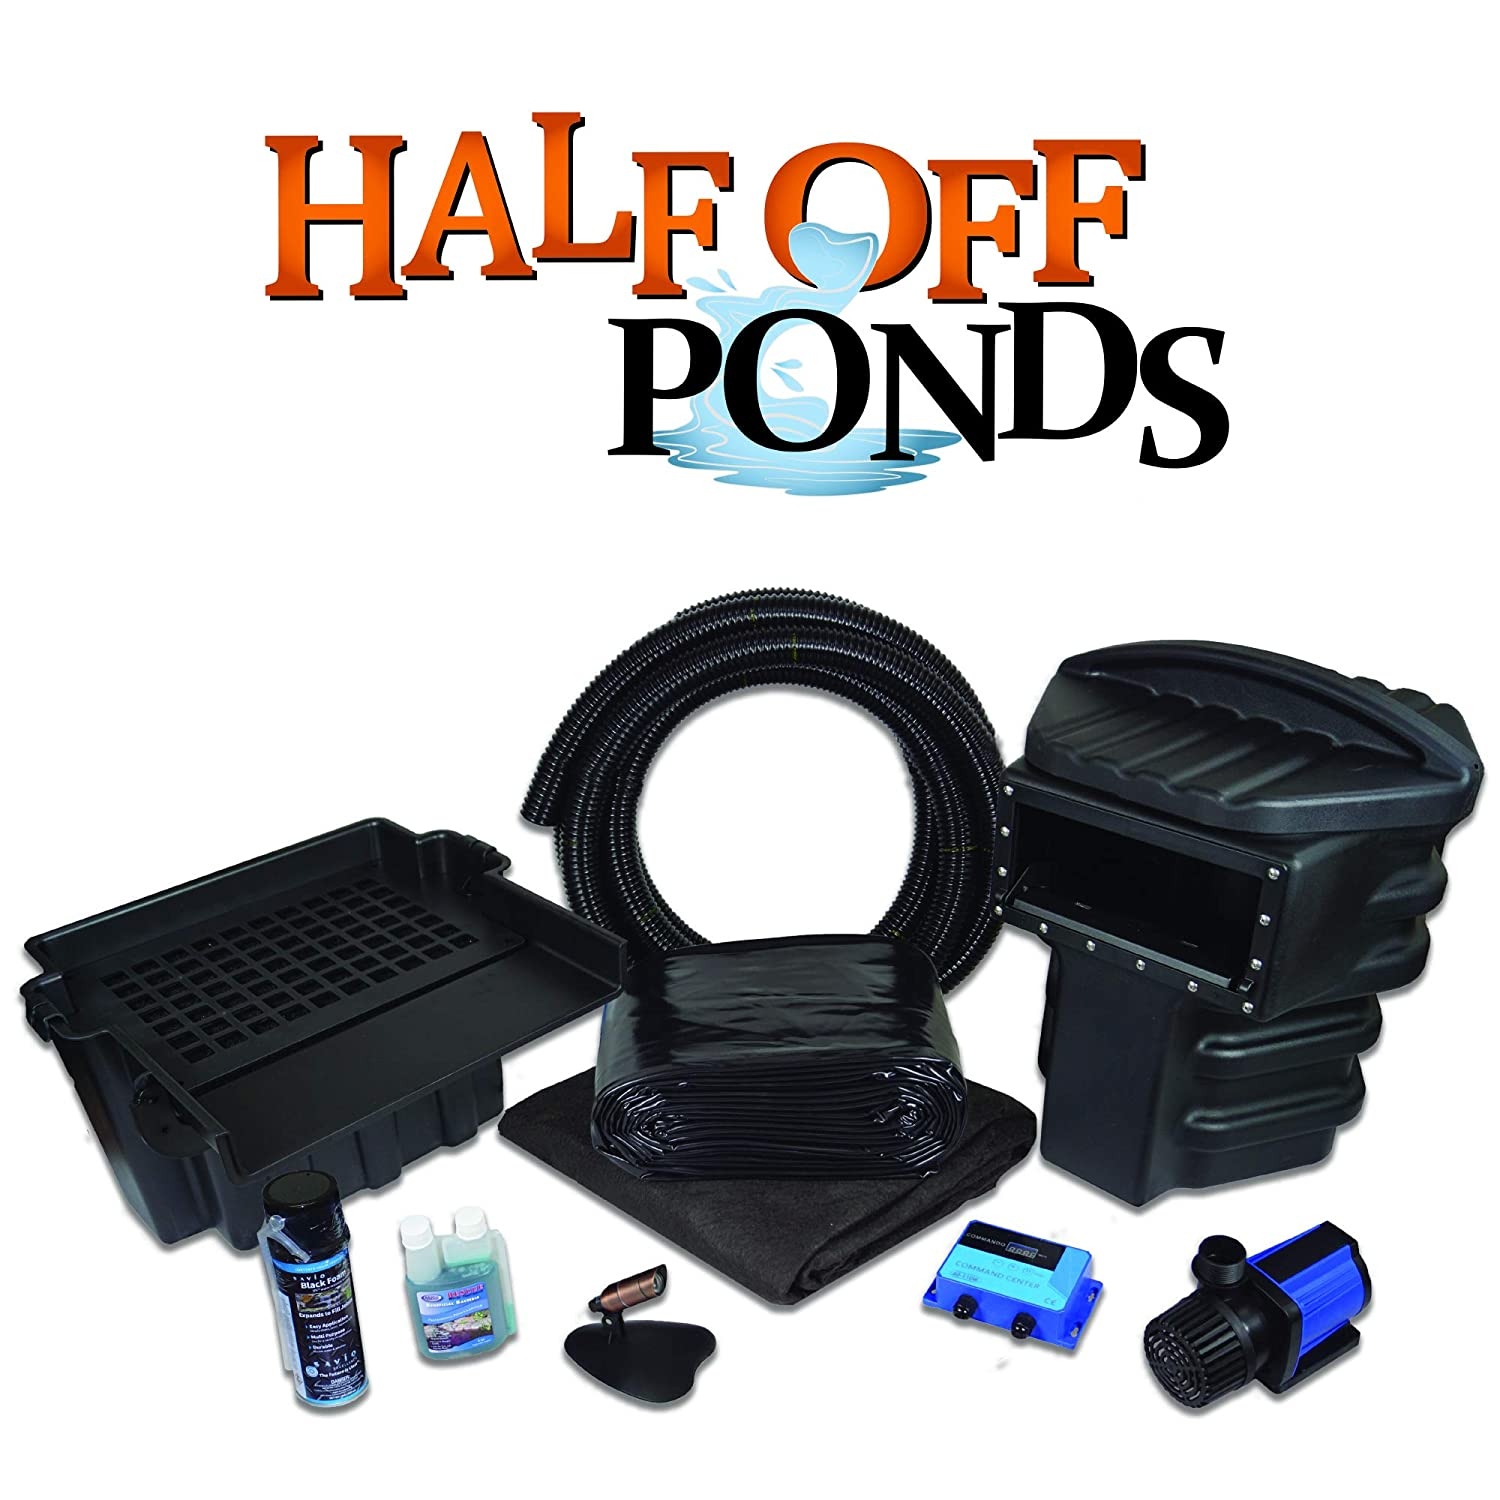 Simply Ponds 2100 Water Garden and Pond Kit with 10 Foot x 10 Foot PVC Liner